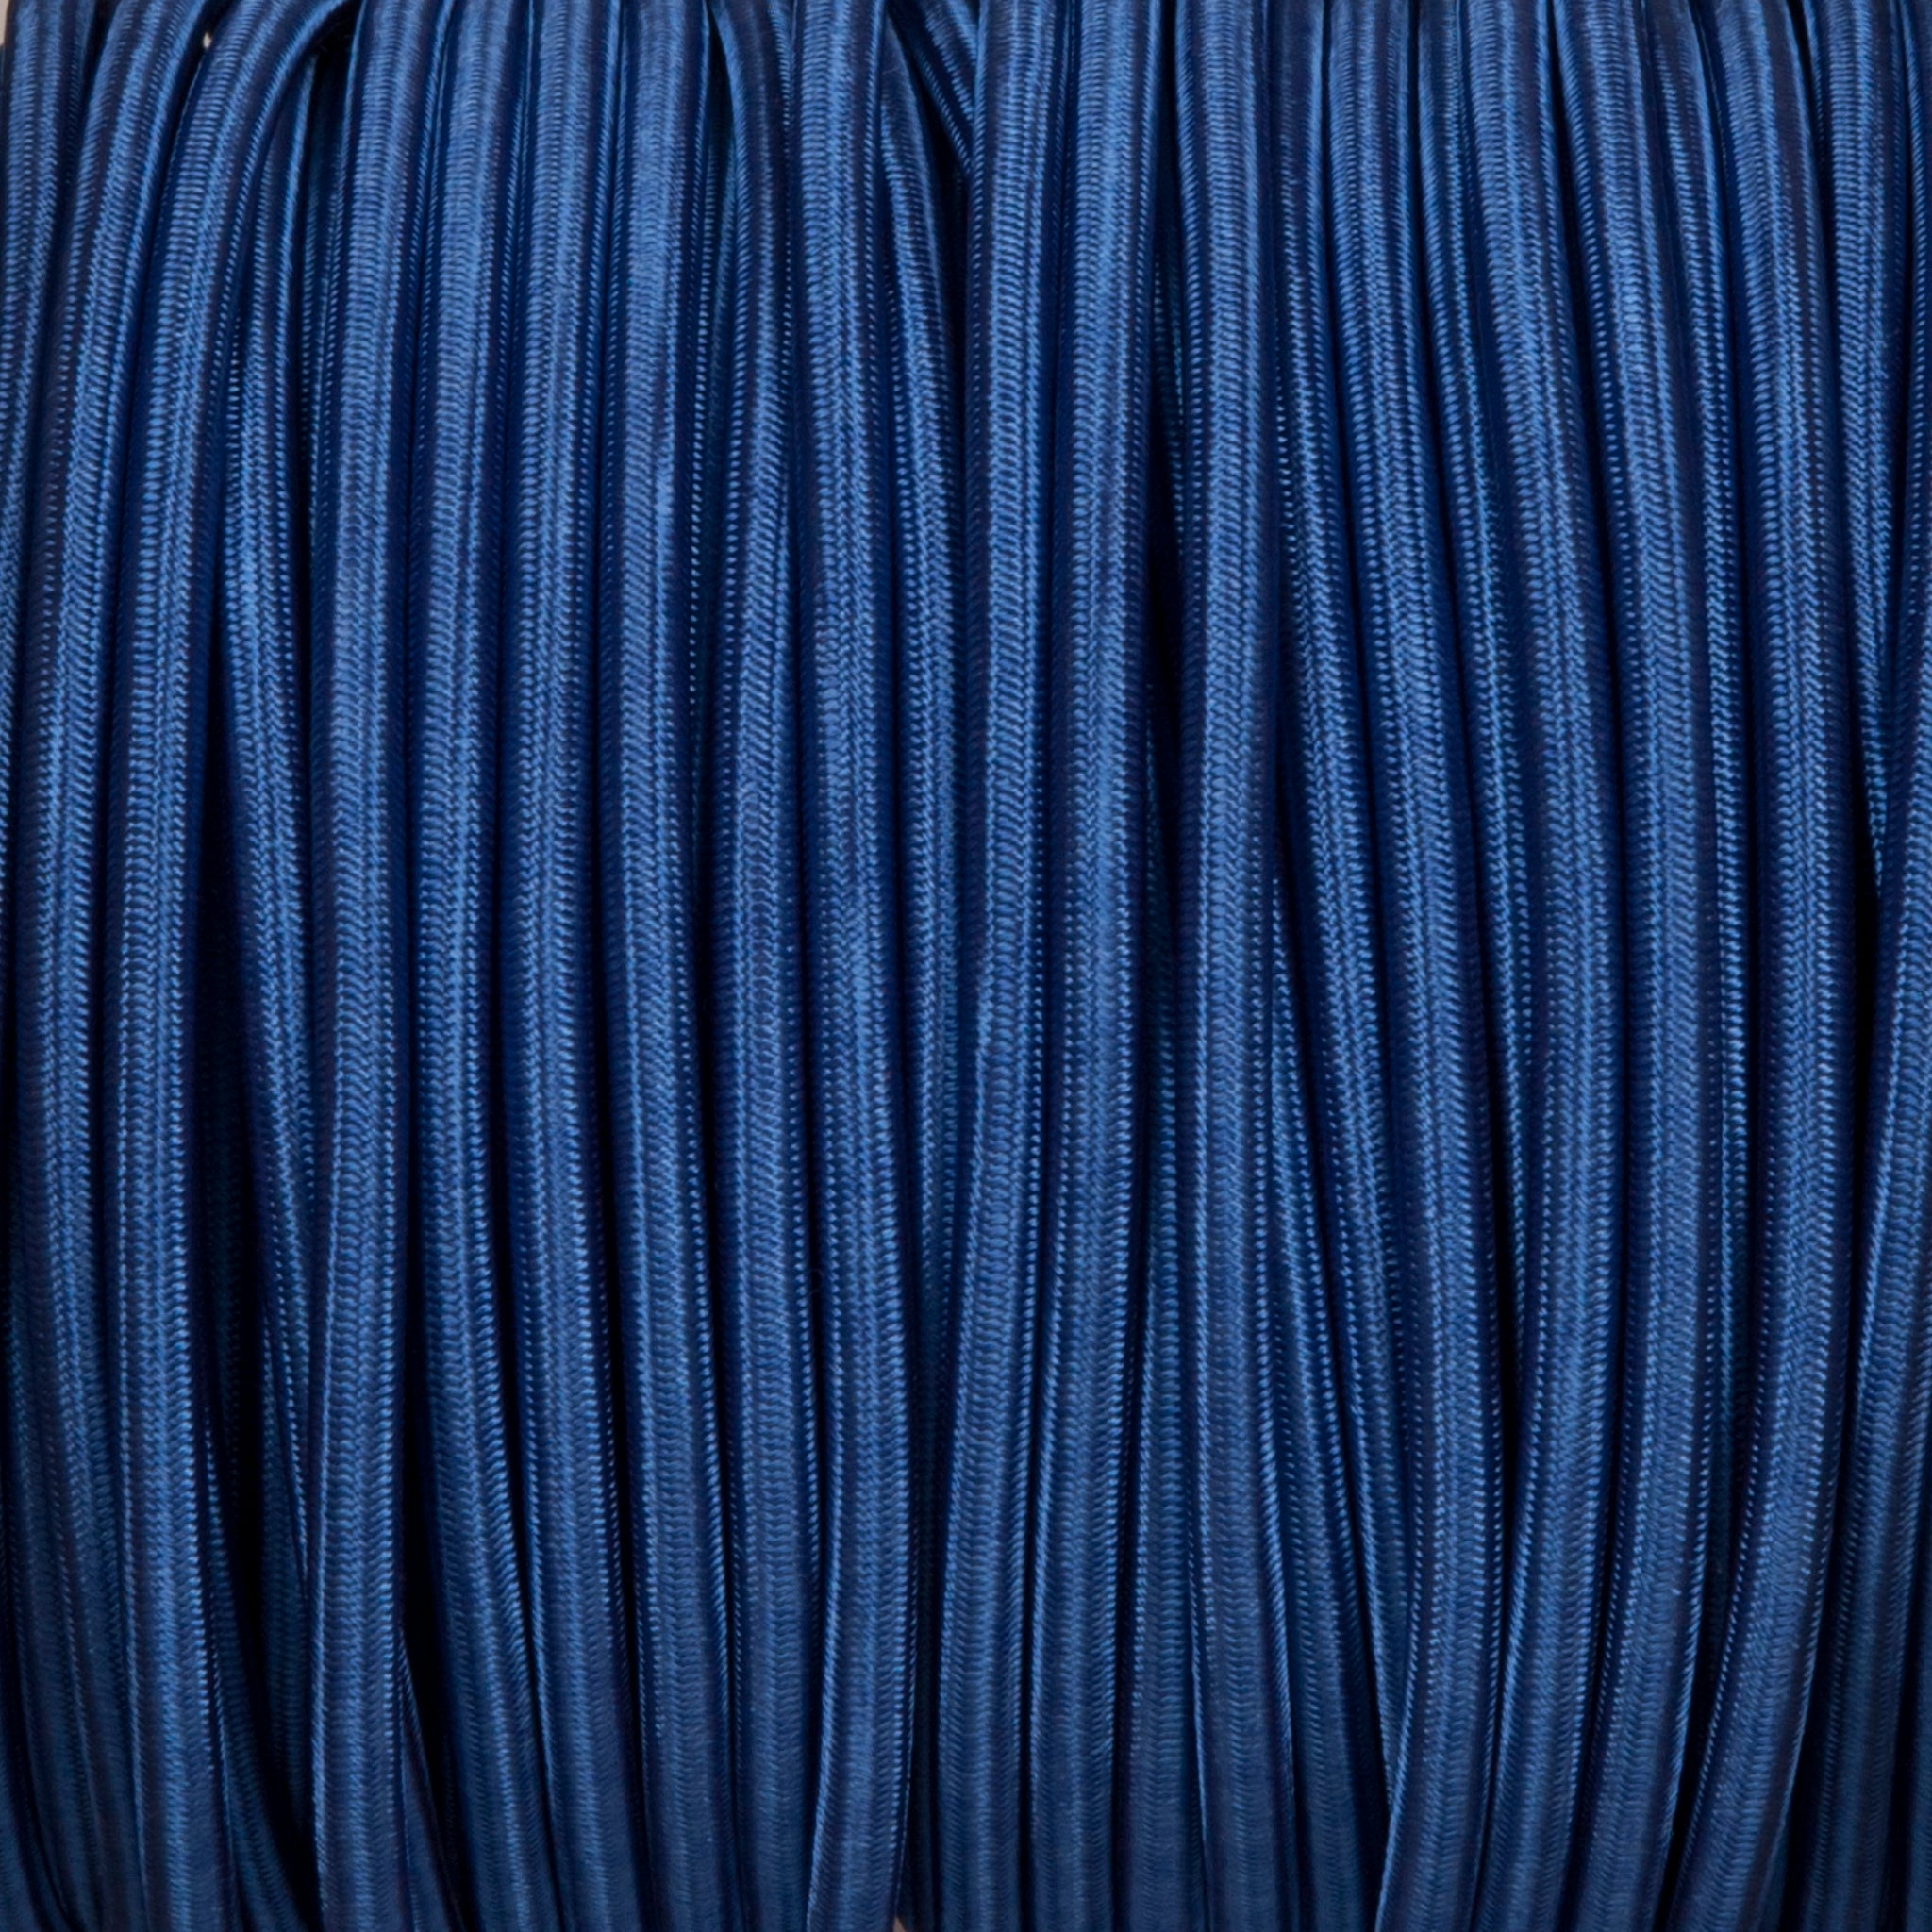 Round lighting cable - Royal blue braided fabric